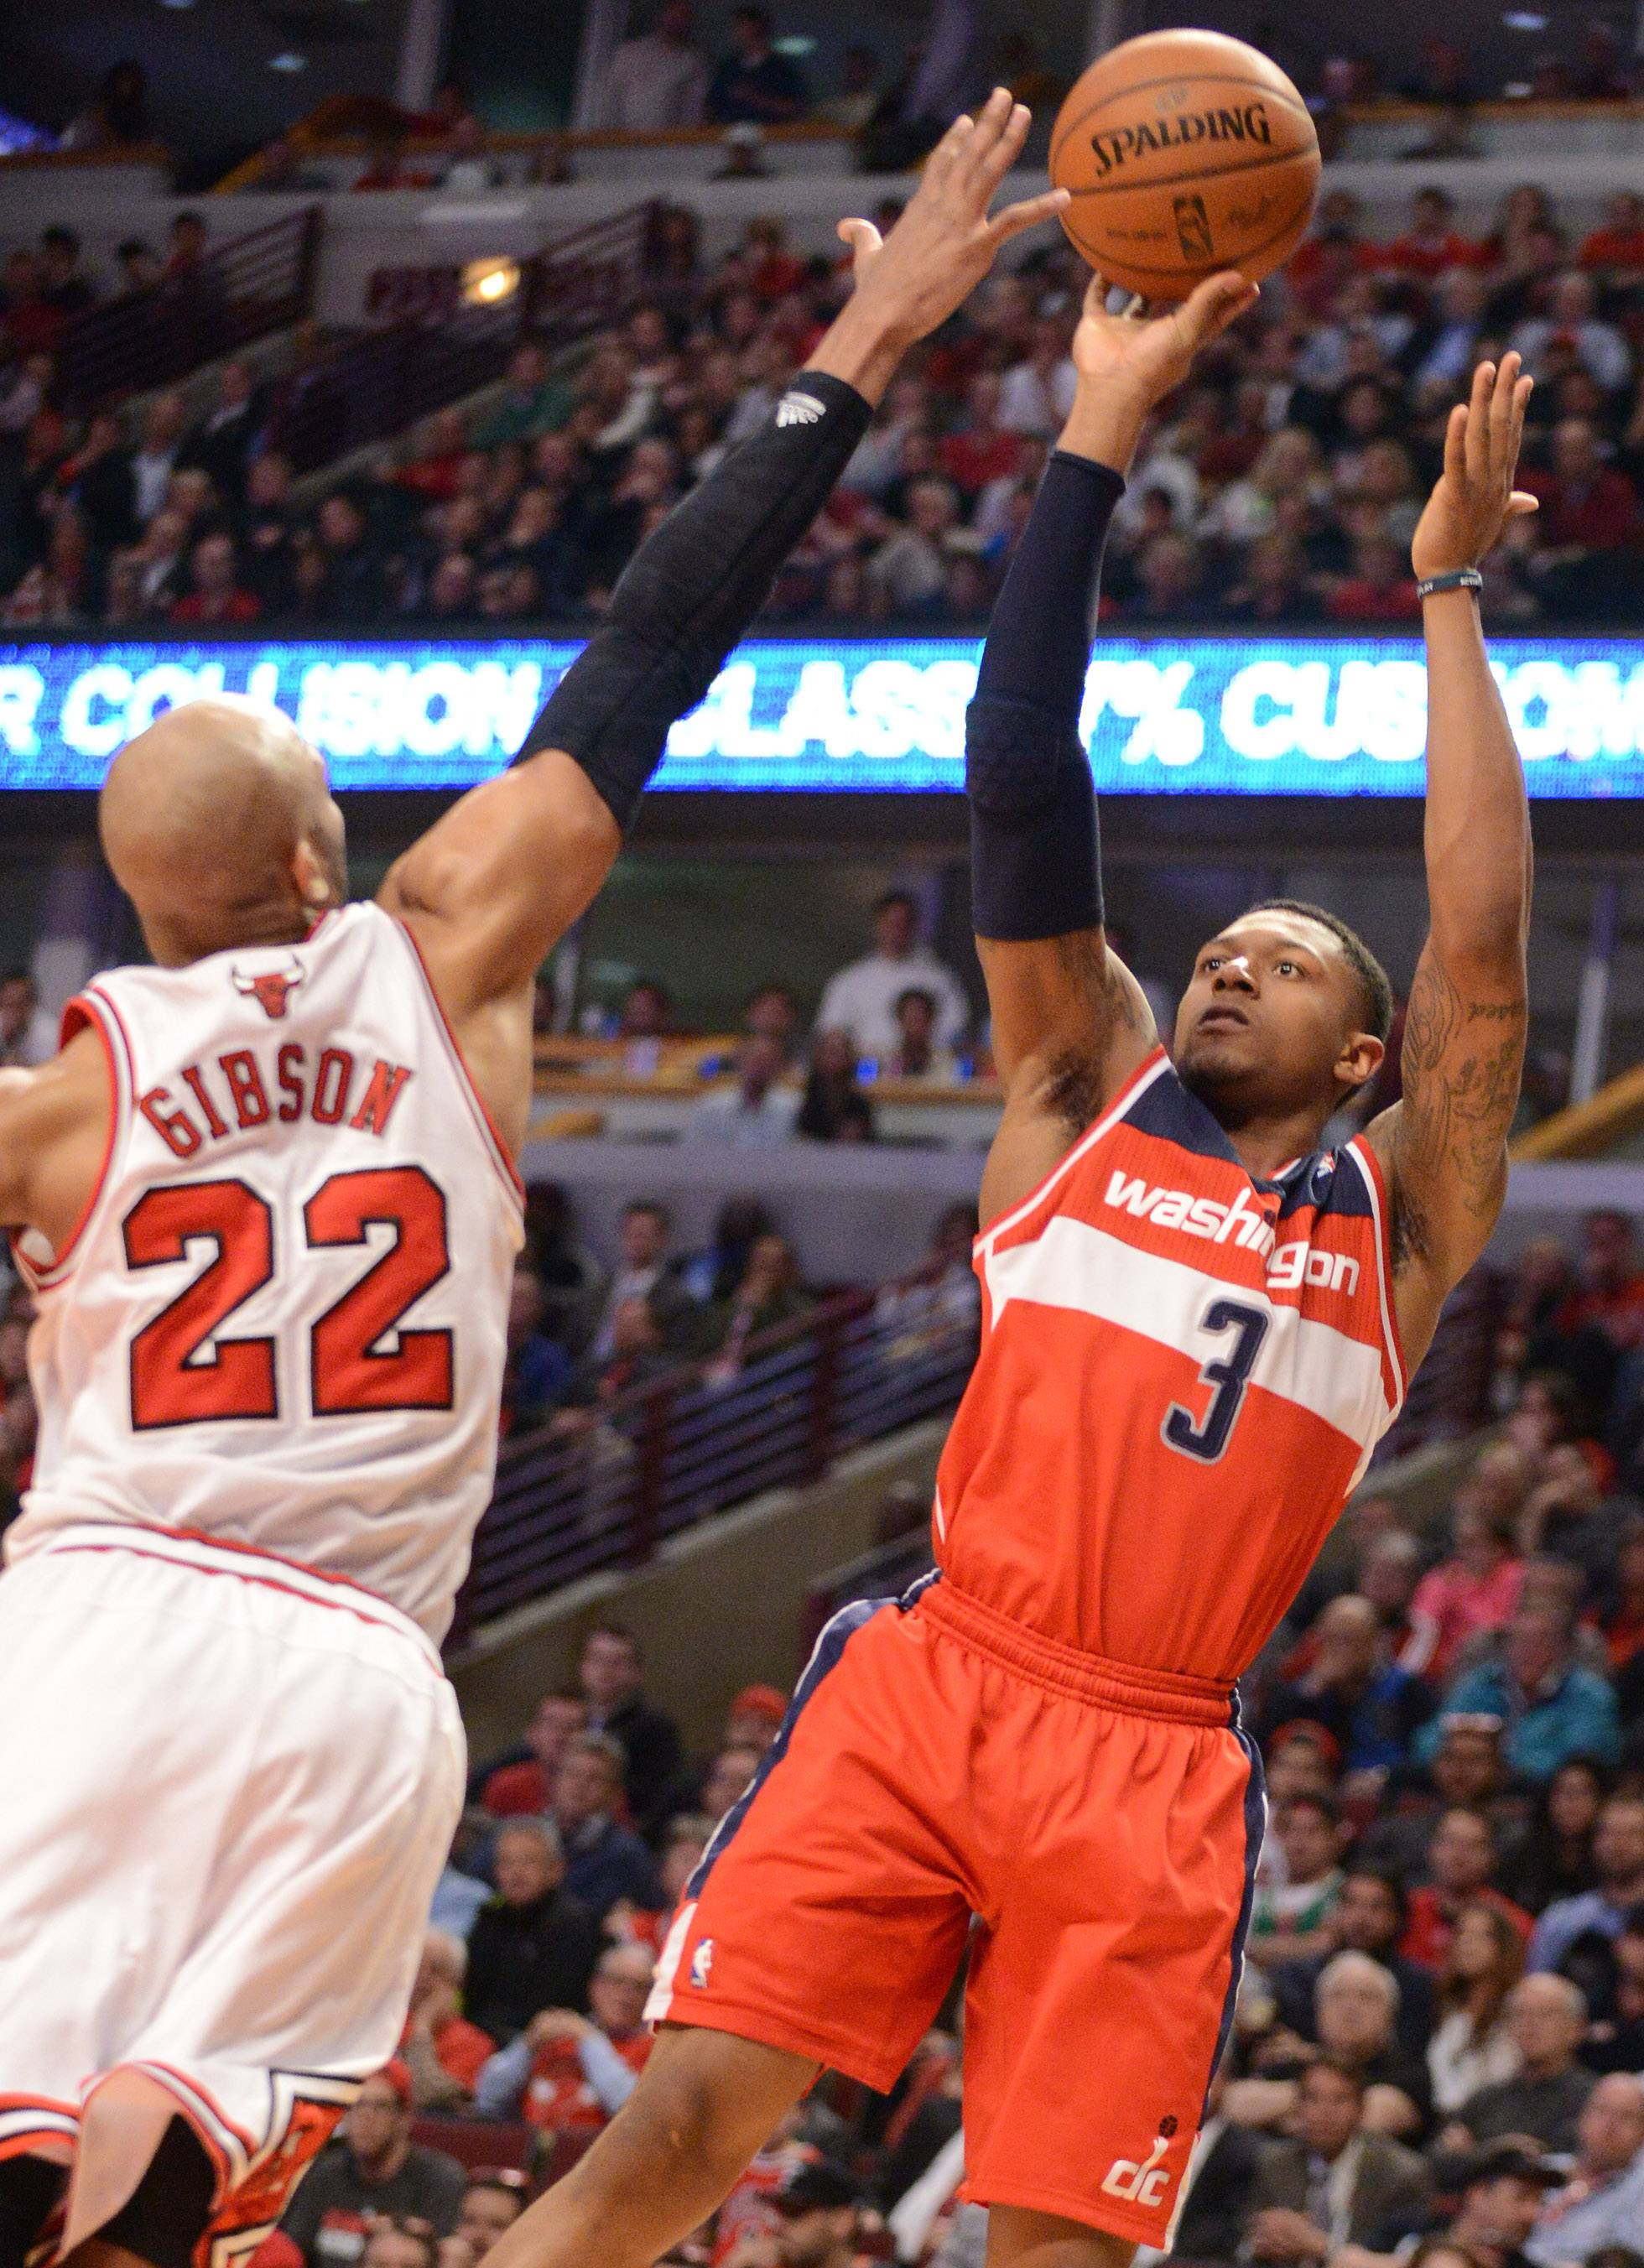 Washington Wizards guard Bradley Beal (3) scores 2 of his 26 points with a jumper over Chicago Bulls forward Taj Gibson (22).